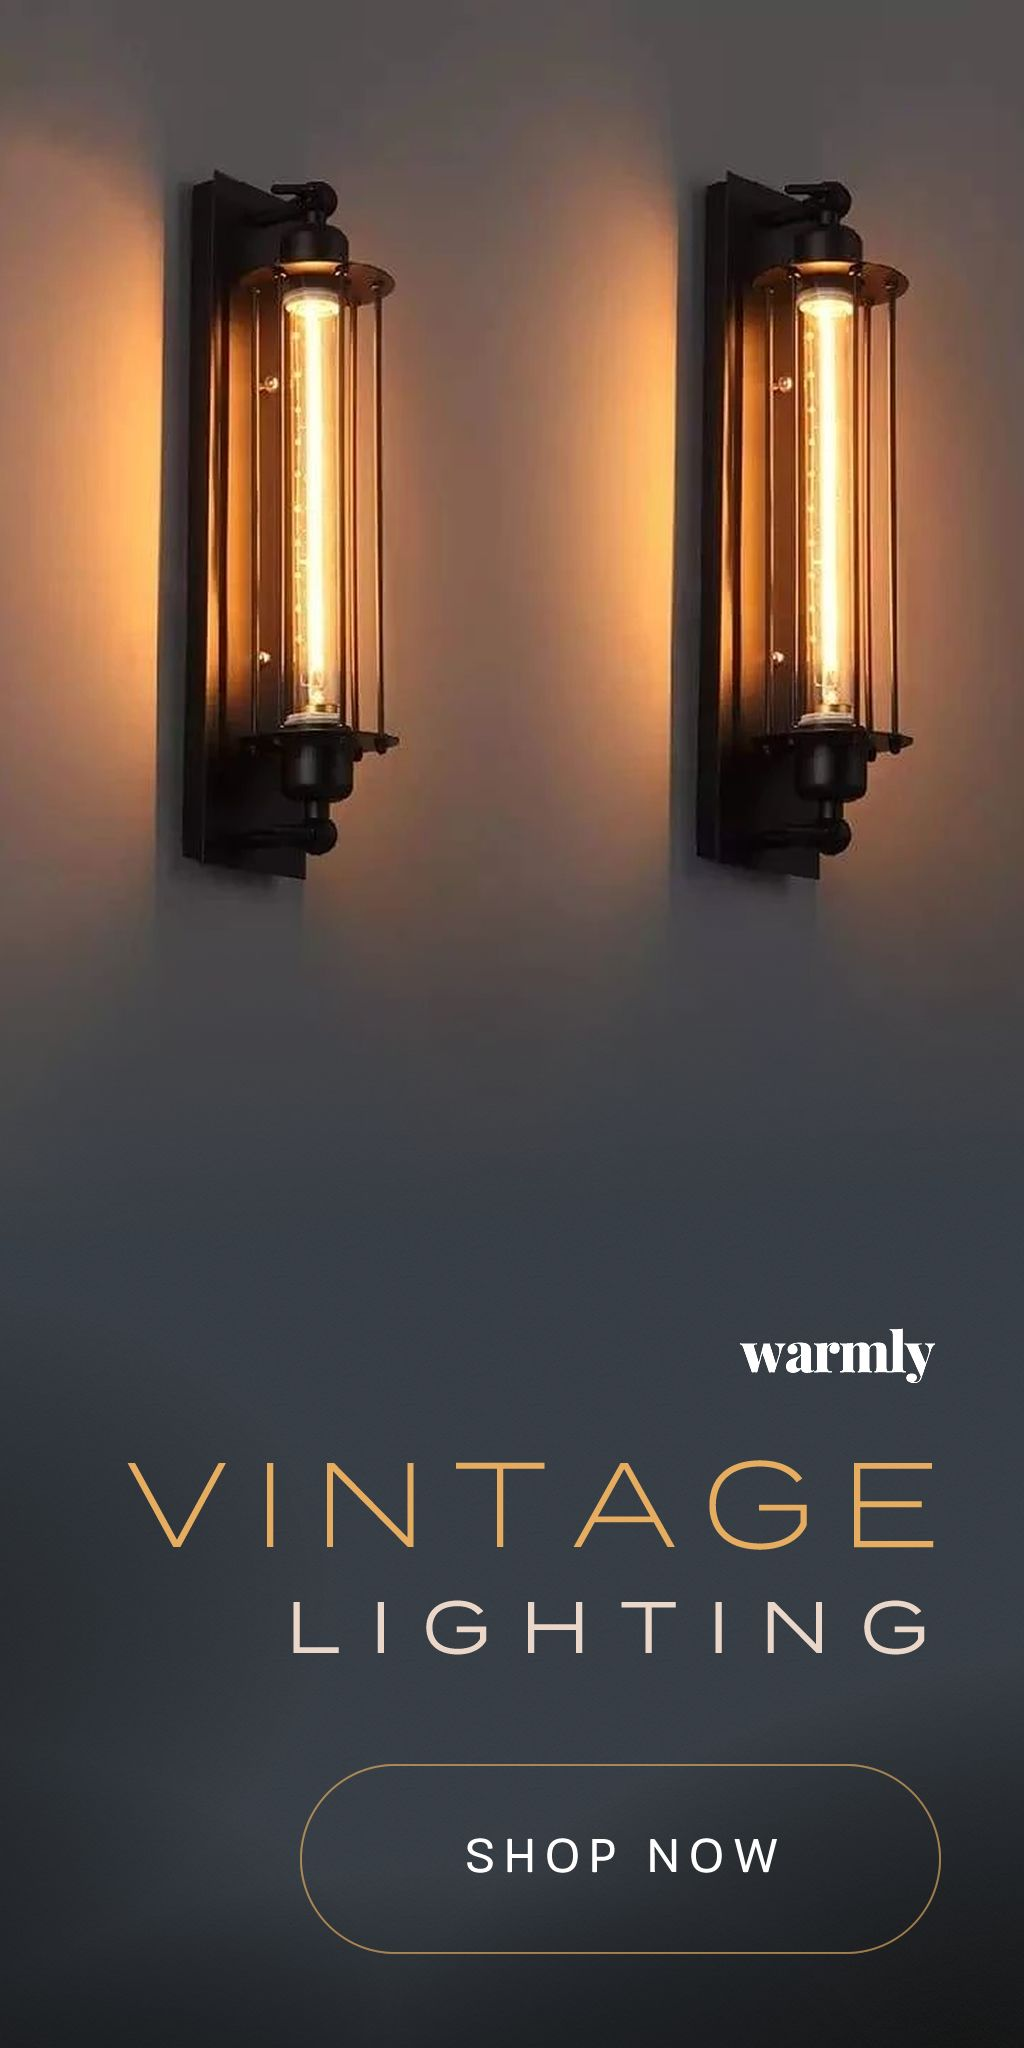 Vintage Lighting - 50% off (or more), while supplies last! #tinyhouses